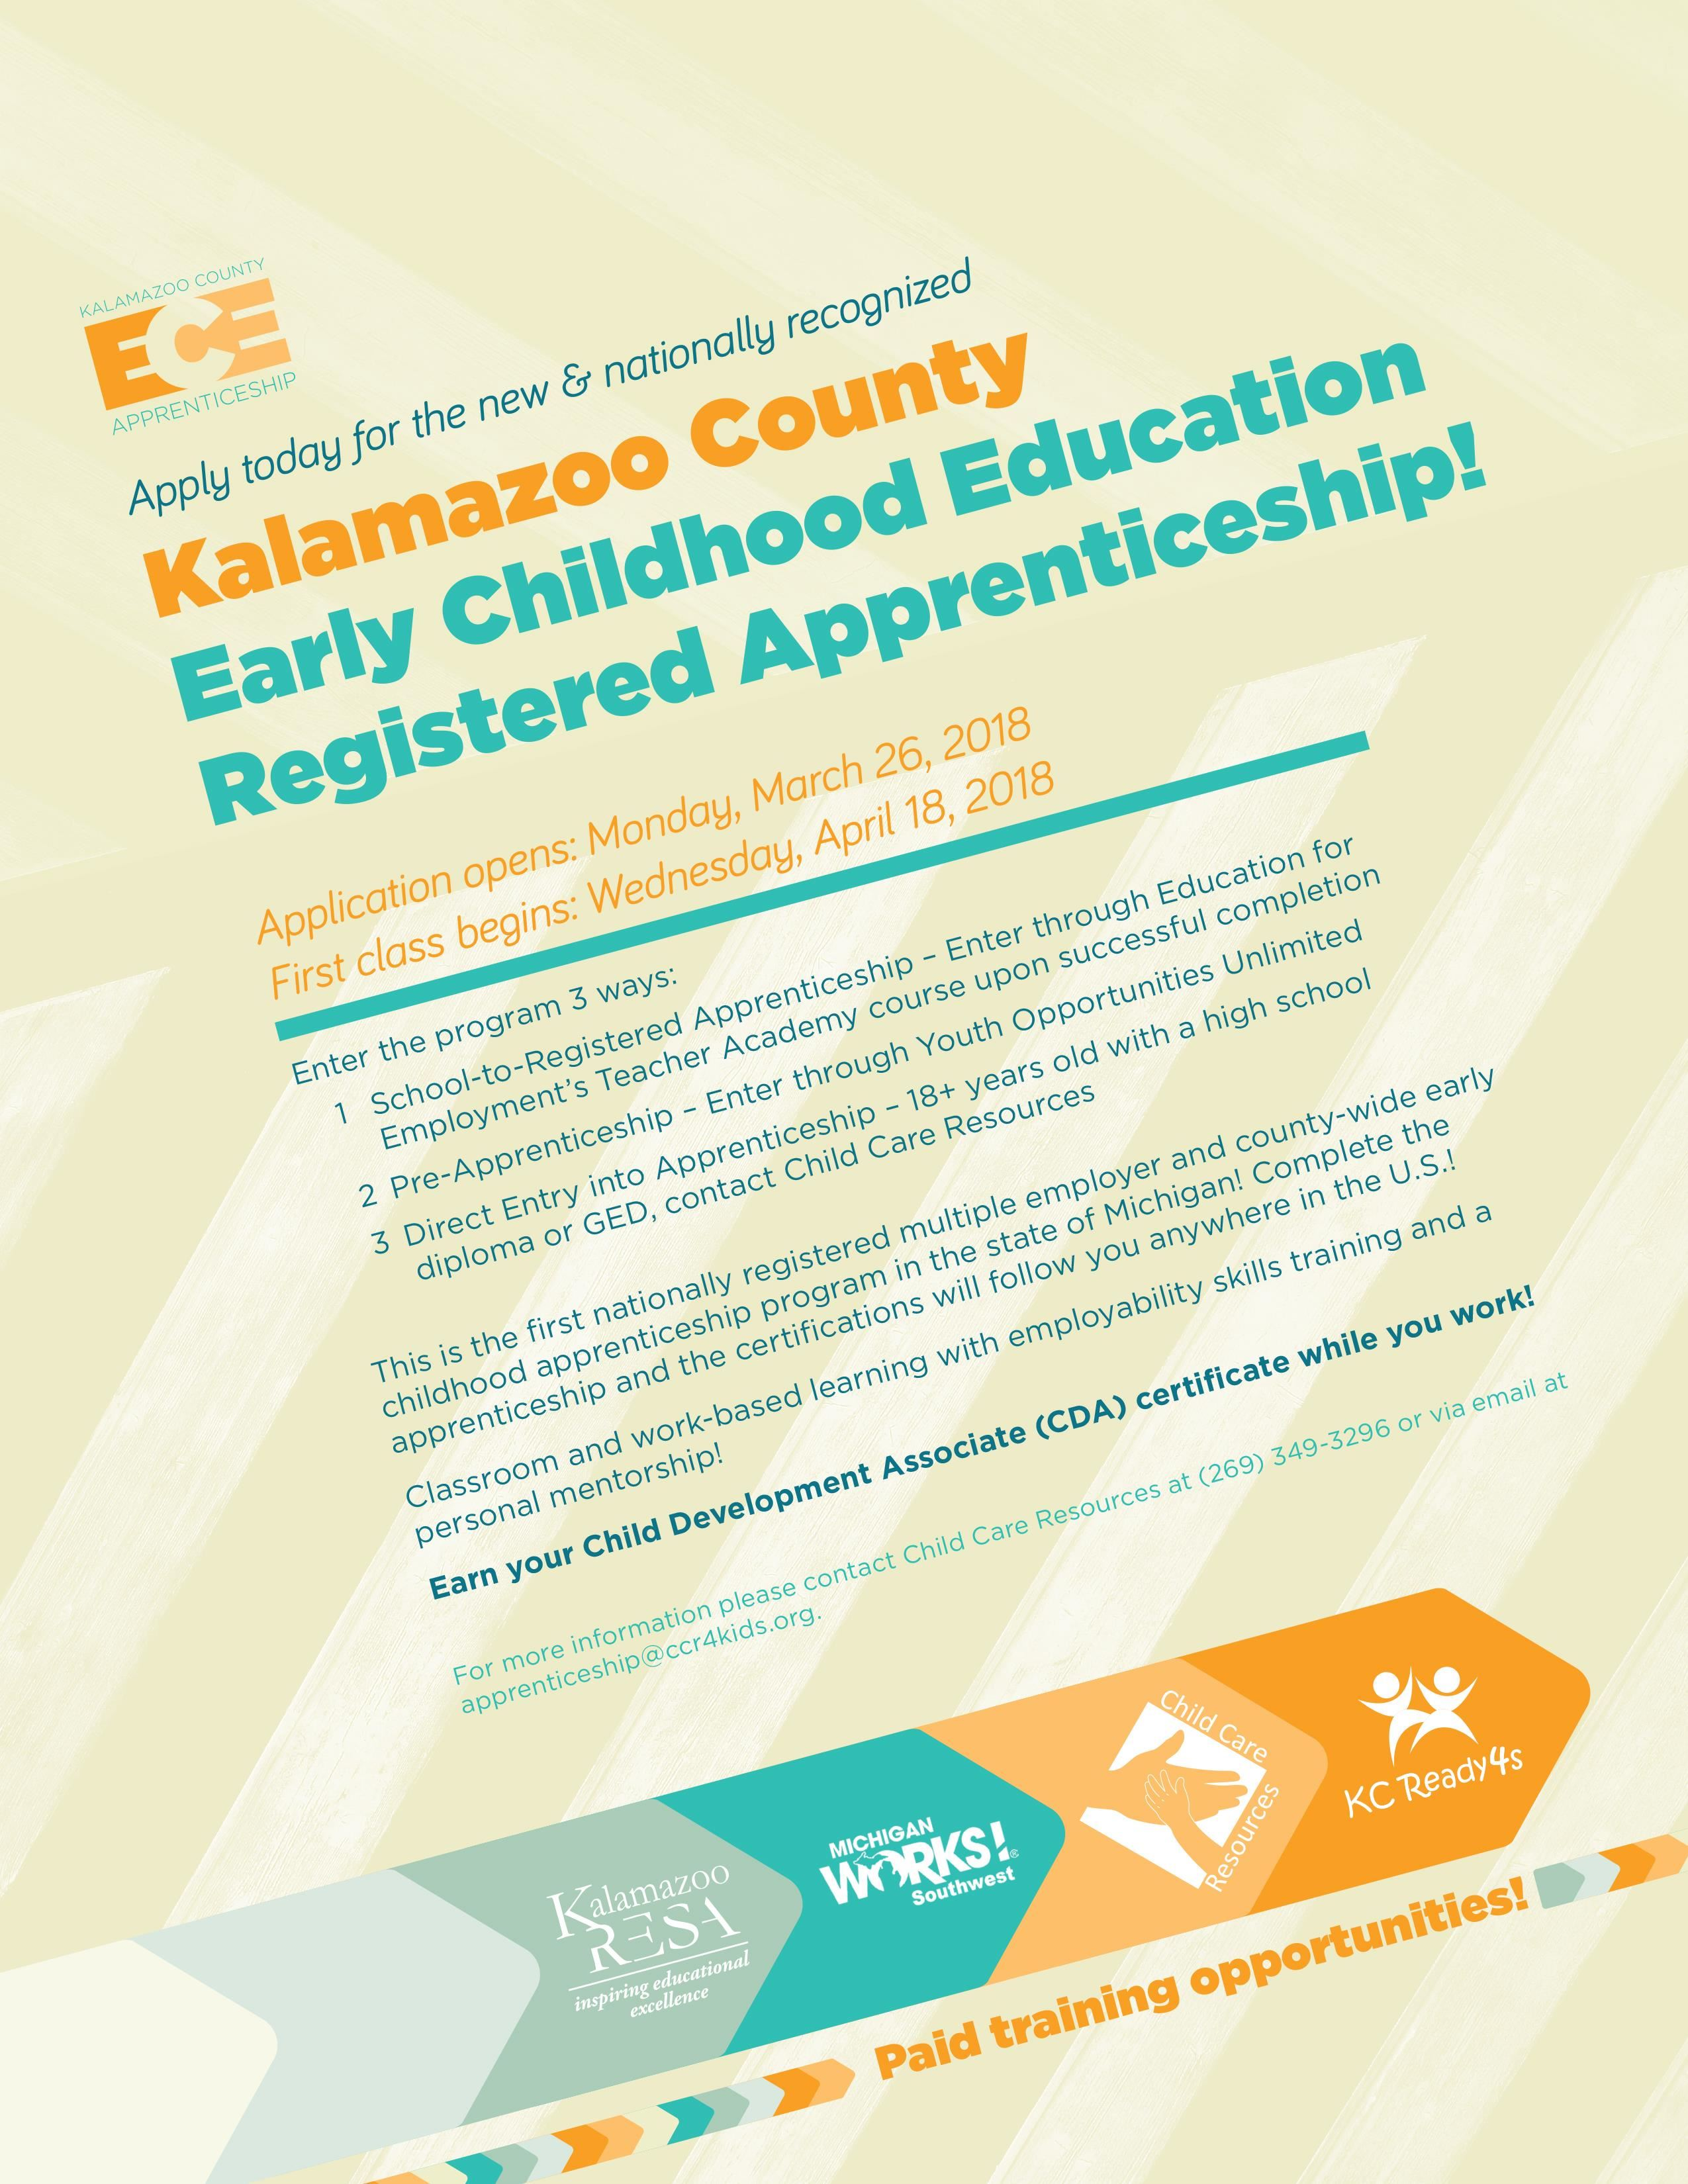 Youth Opportunities Unlimited You Ece Apprenticeship